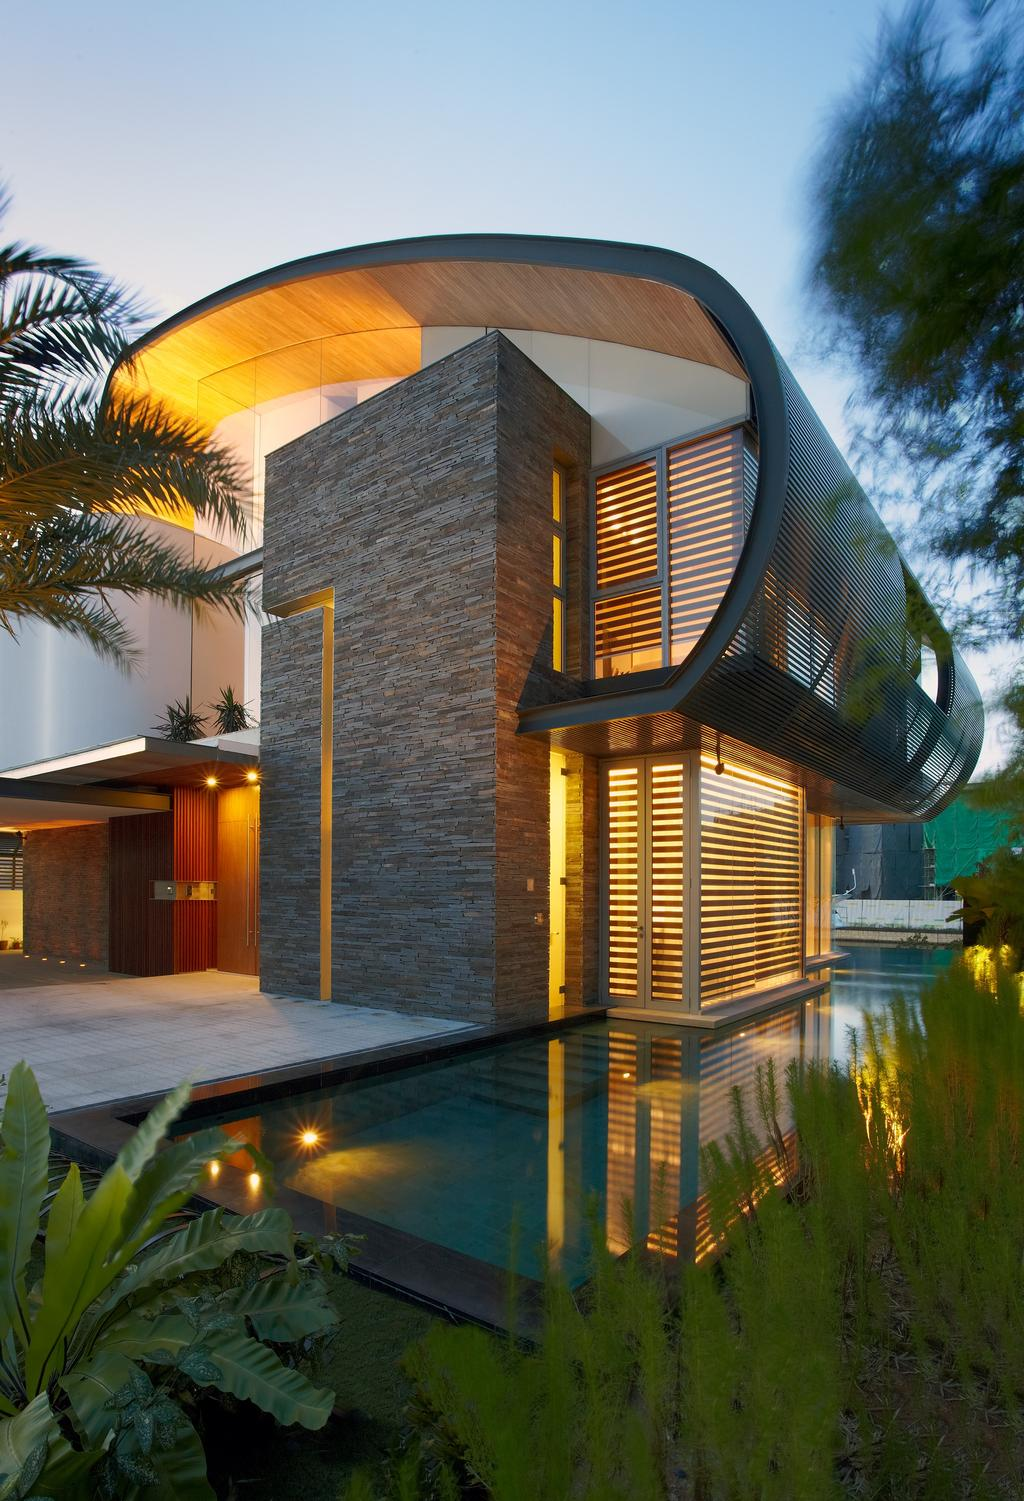 Modern, Landed, Cove Way 2, Architect, Greg Shand Architects, Exterior View, Plants, Concealed Lights, Tiled Wall, Rough Tiled Wall, Shelter, Indoor Pool, Private Pool, Curtain, Home Decor, Shutter, Window, Window Shade, Arecaceae, Flora, Palm Tree, Plant, Tree, Building, House, Housing, Villa